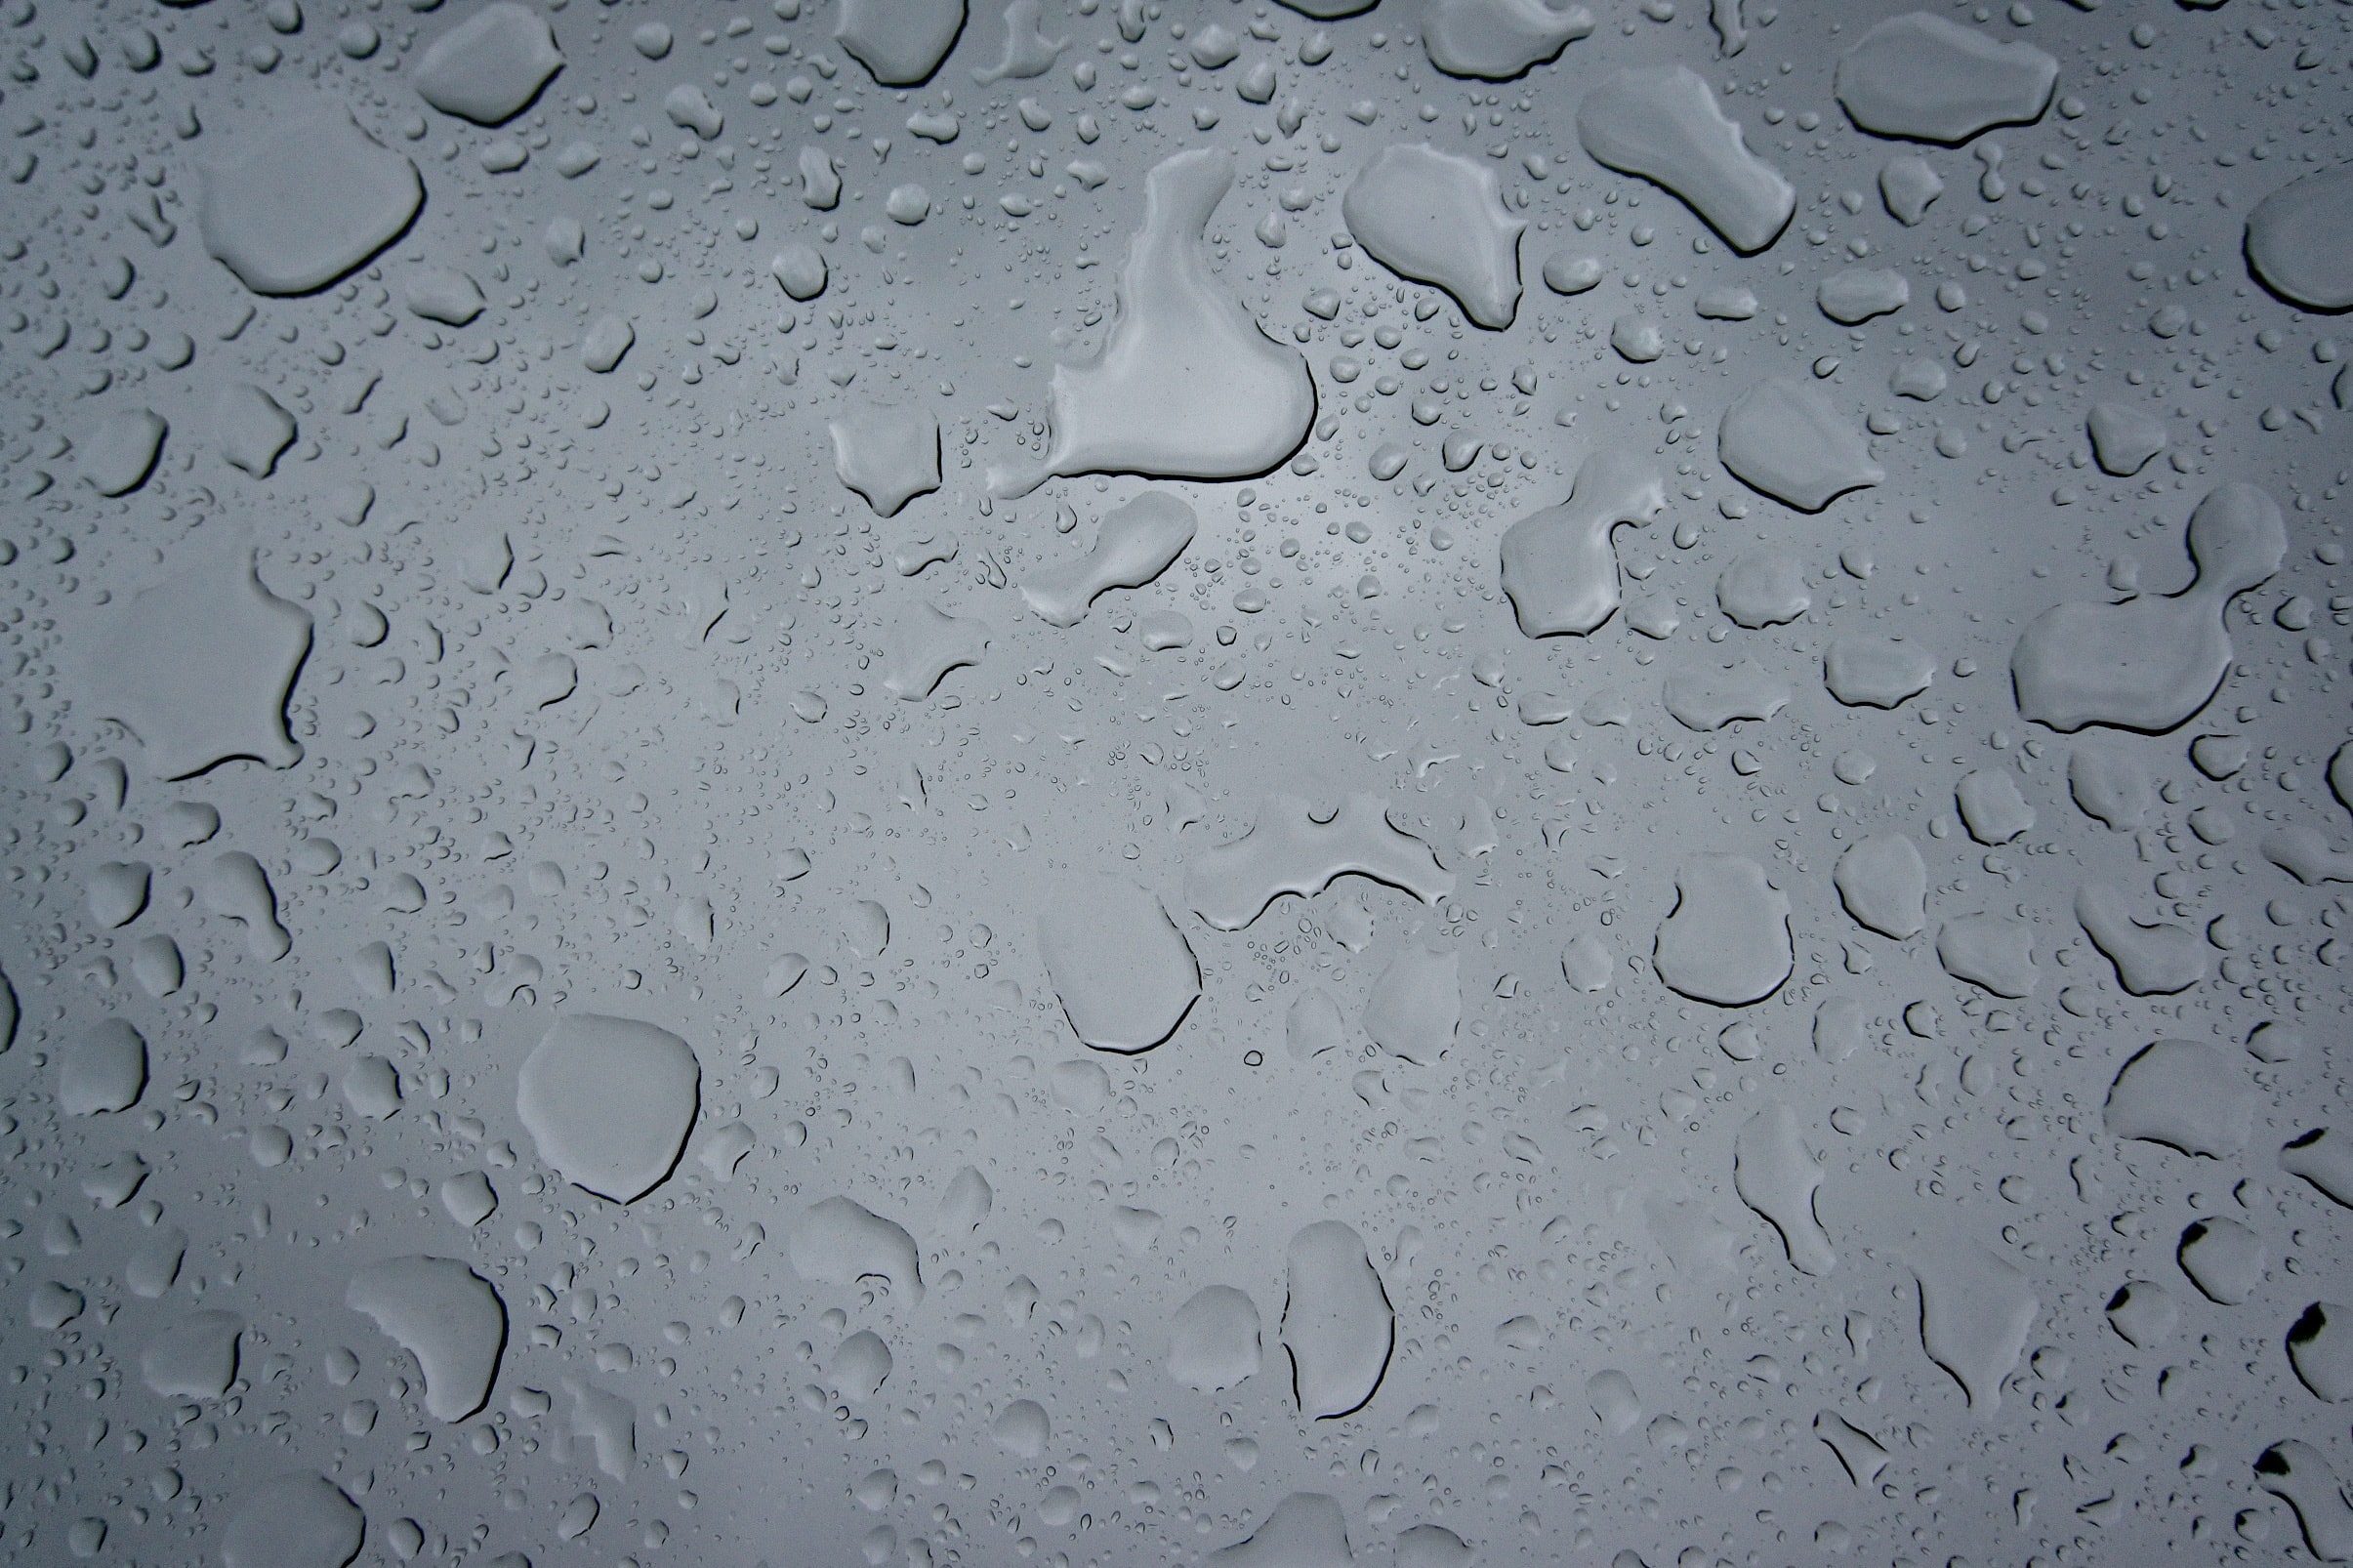 A wet gray surface.